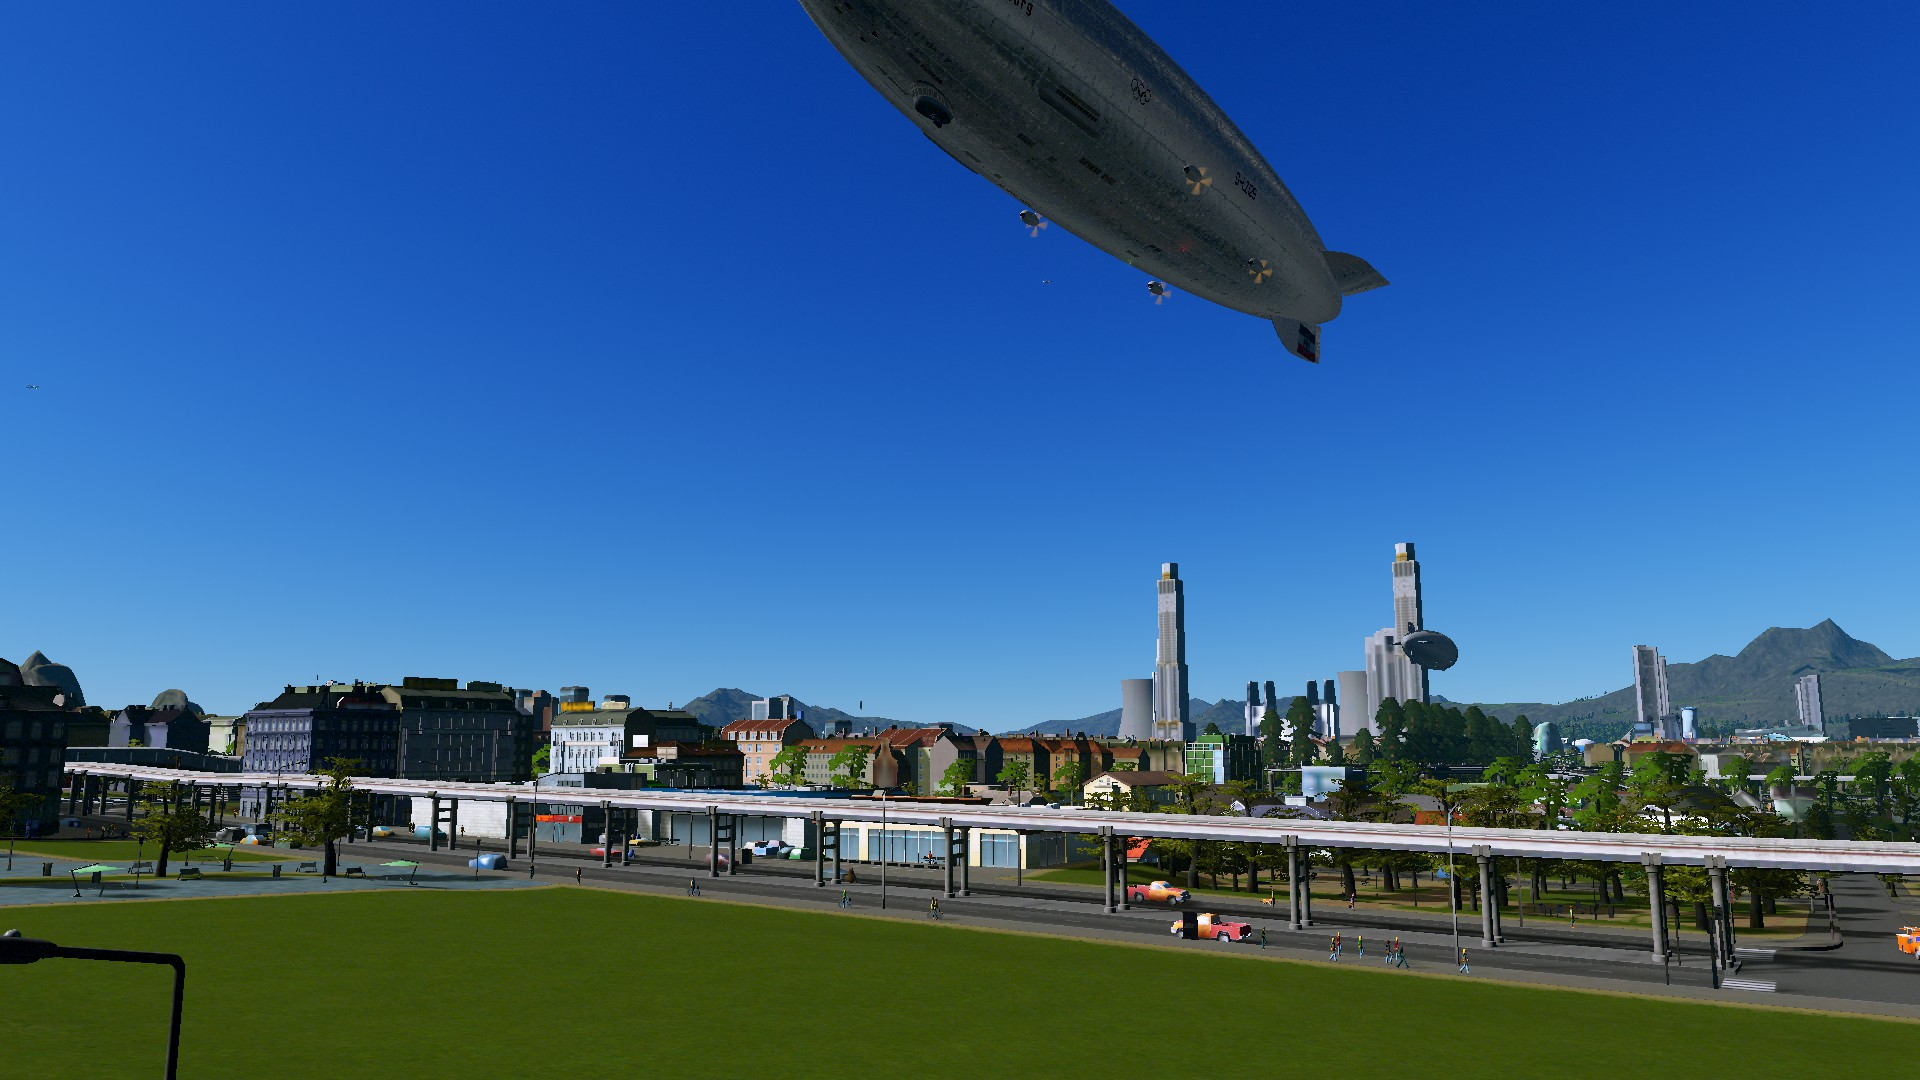 One Metro + One Micro District = Another Day in #CitiesSkylines (Grand City of Solaria)